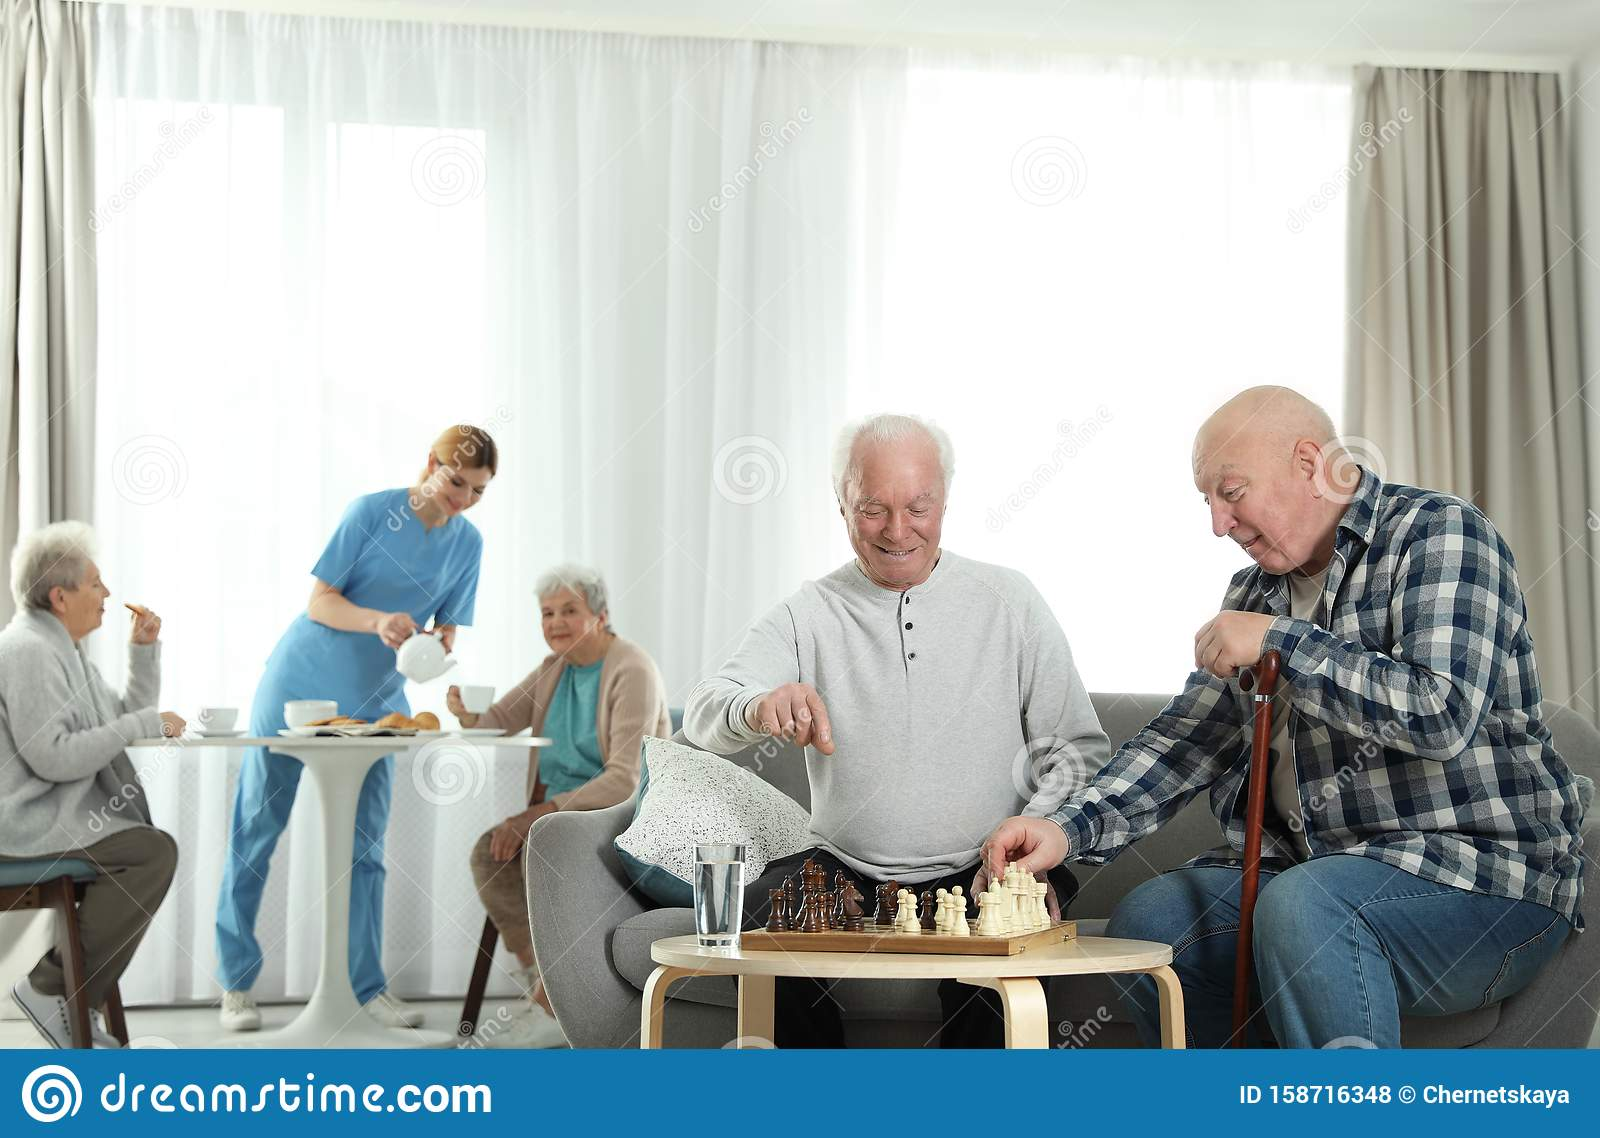 Elderly men playing chess while nurse serving breakfast to women. Assisting senior people